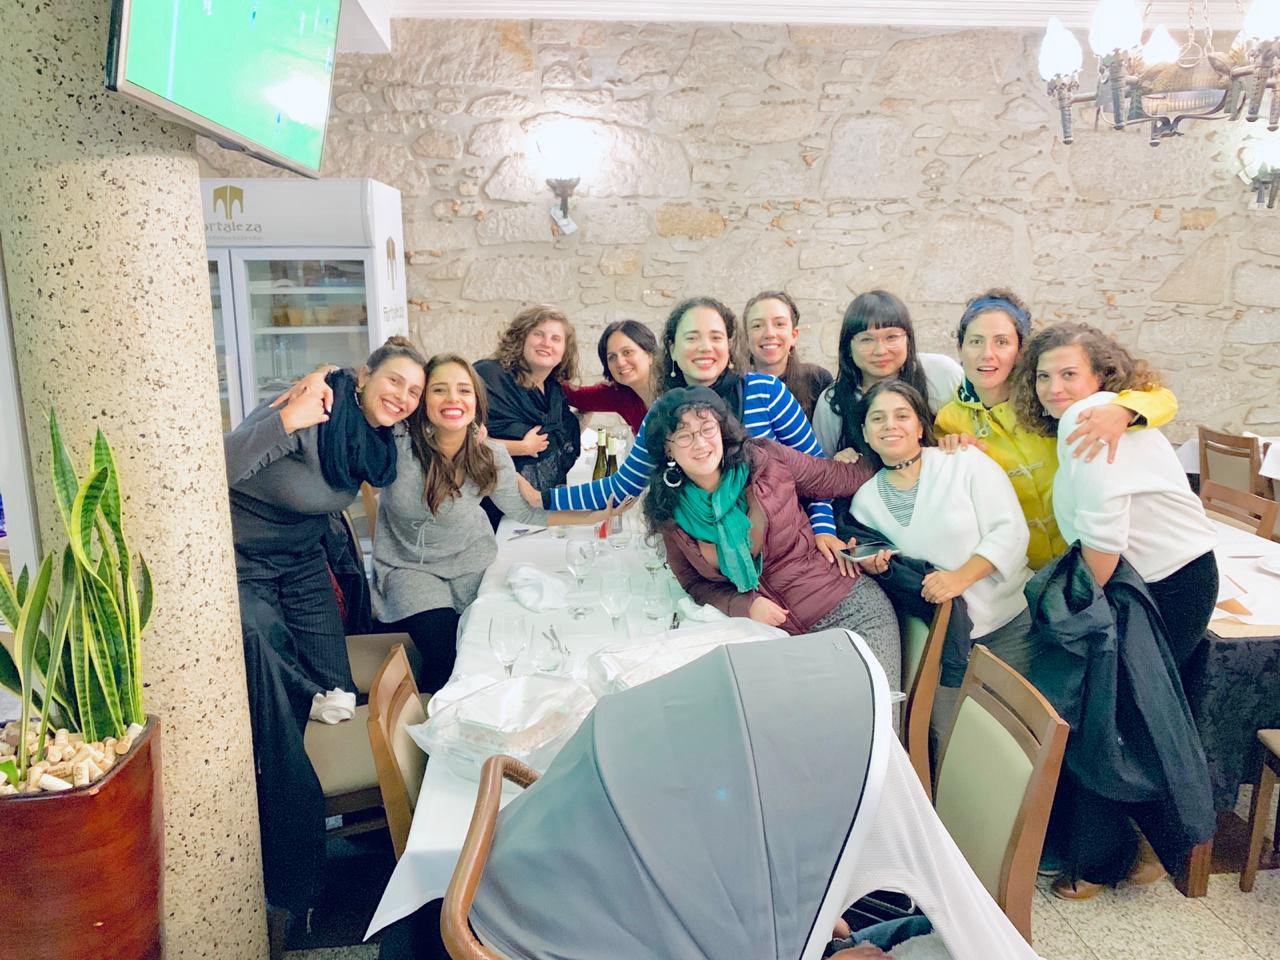 Isabella, Shalini, Wafaa and the rest of Meedan's female team at a company retreat in Porto, Oct. 2019